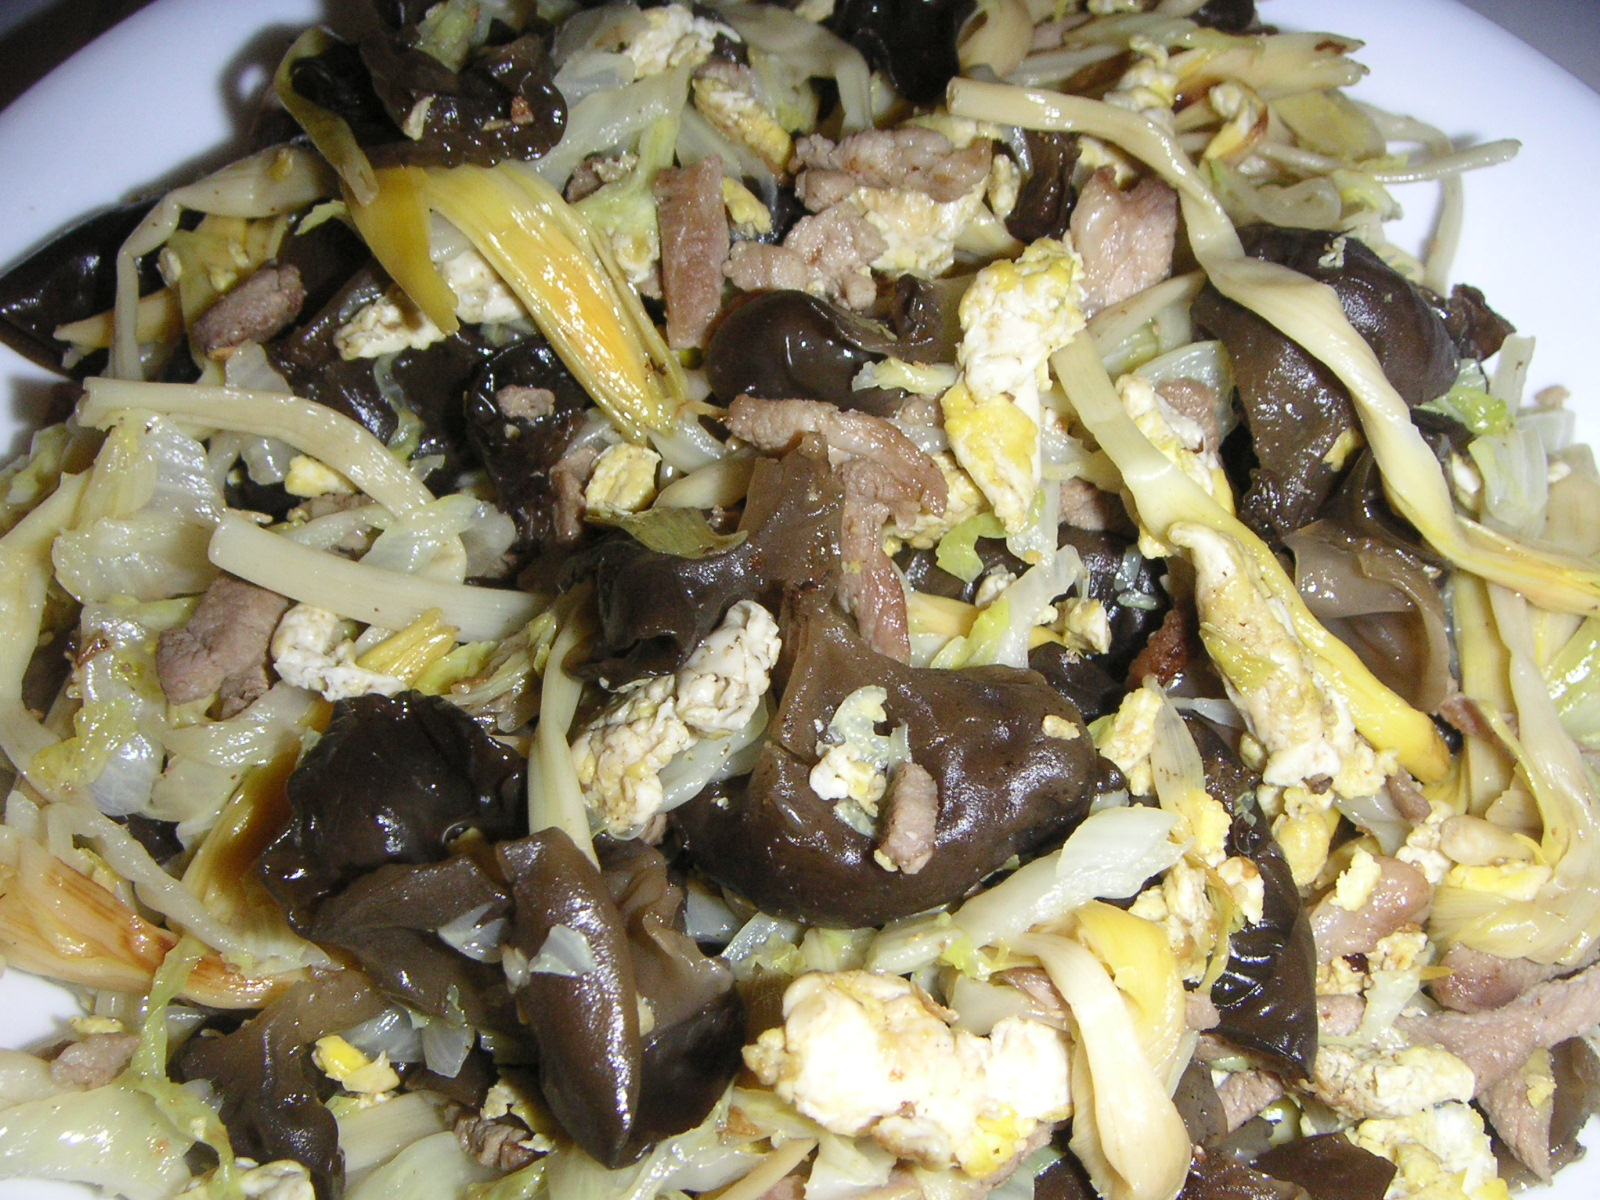 Moo shu pork - Wikipedia